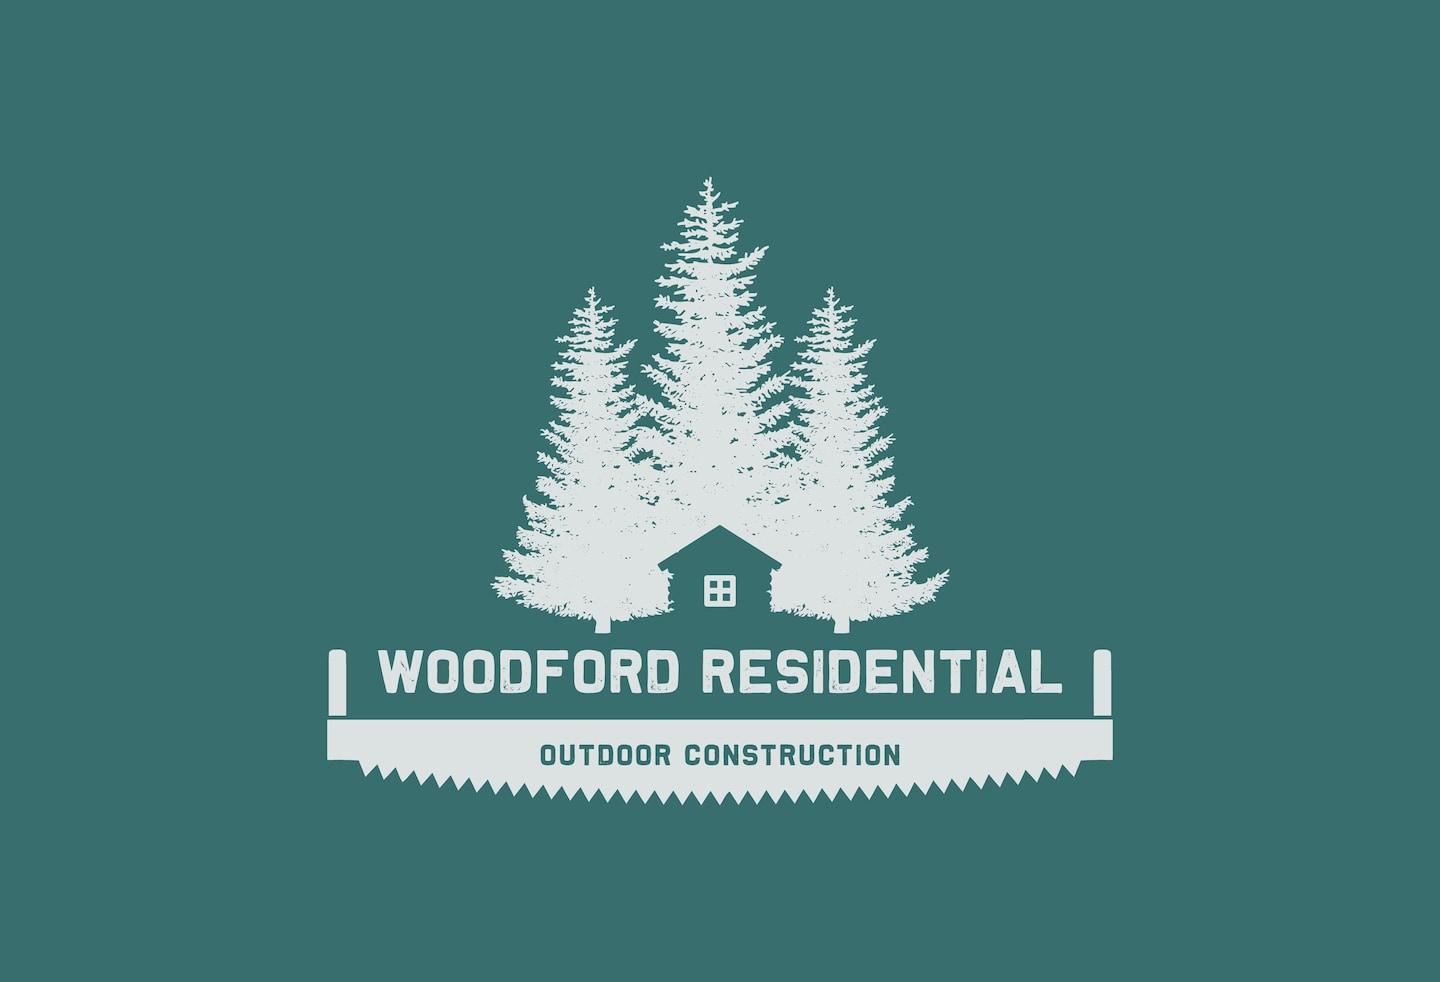 Woodford Residential